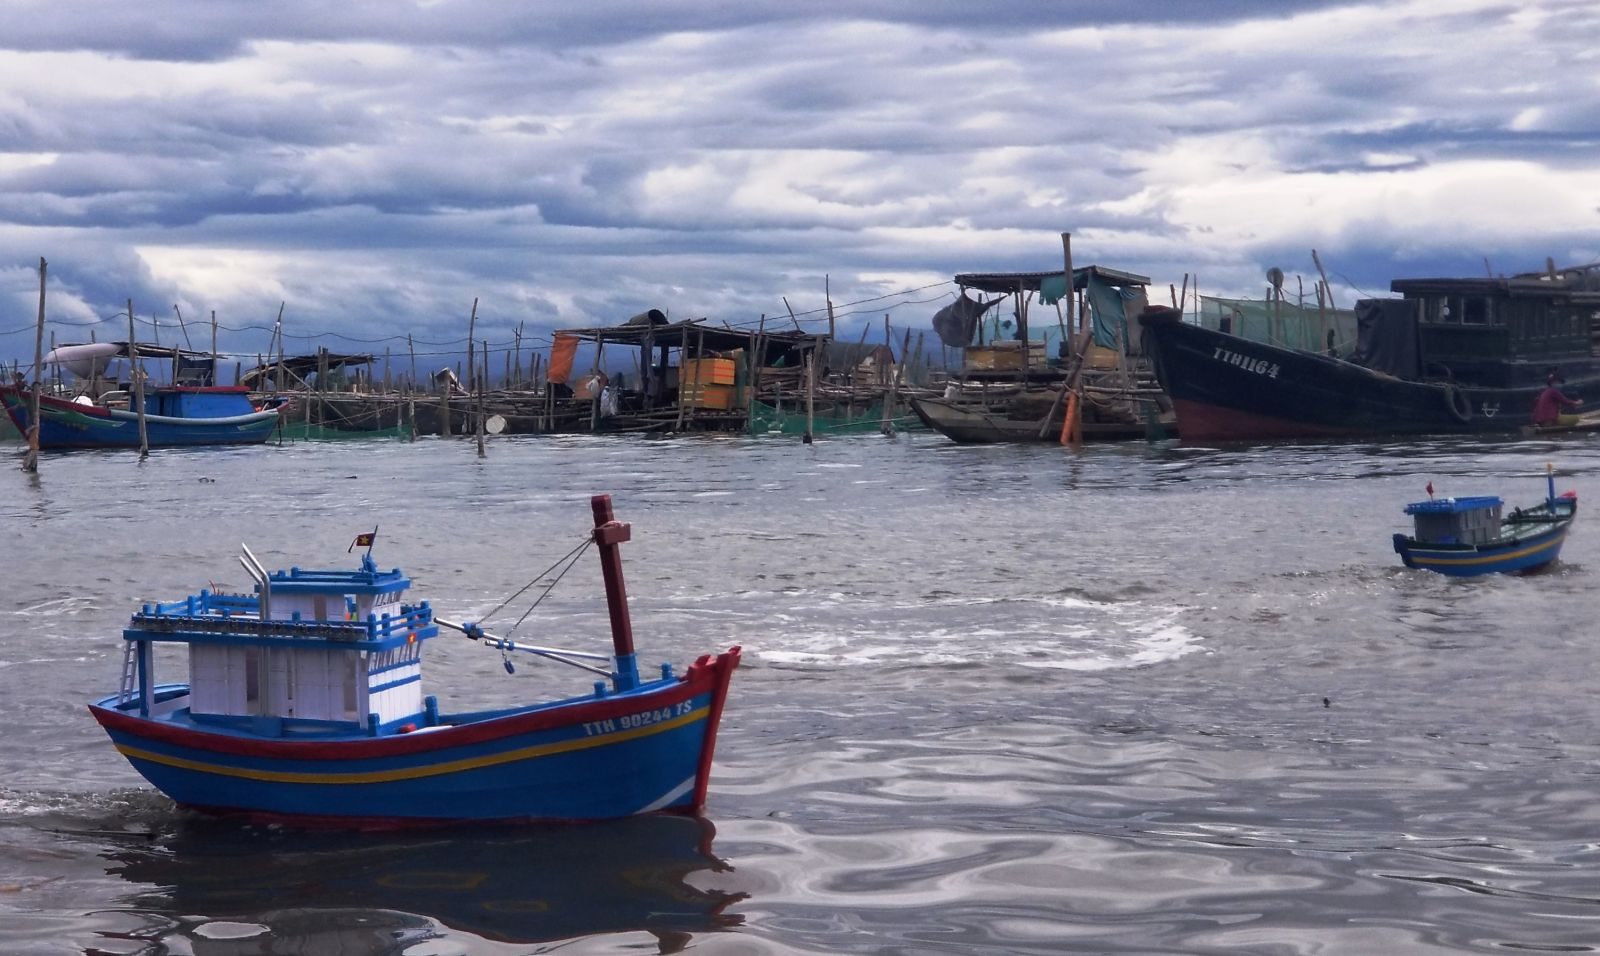 Model fishing vessels & the dream to reach the big sea